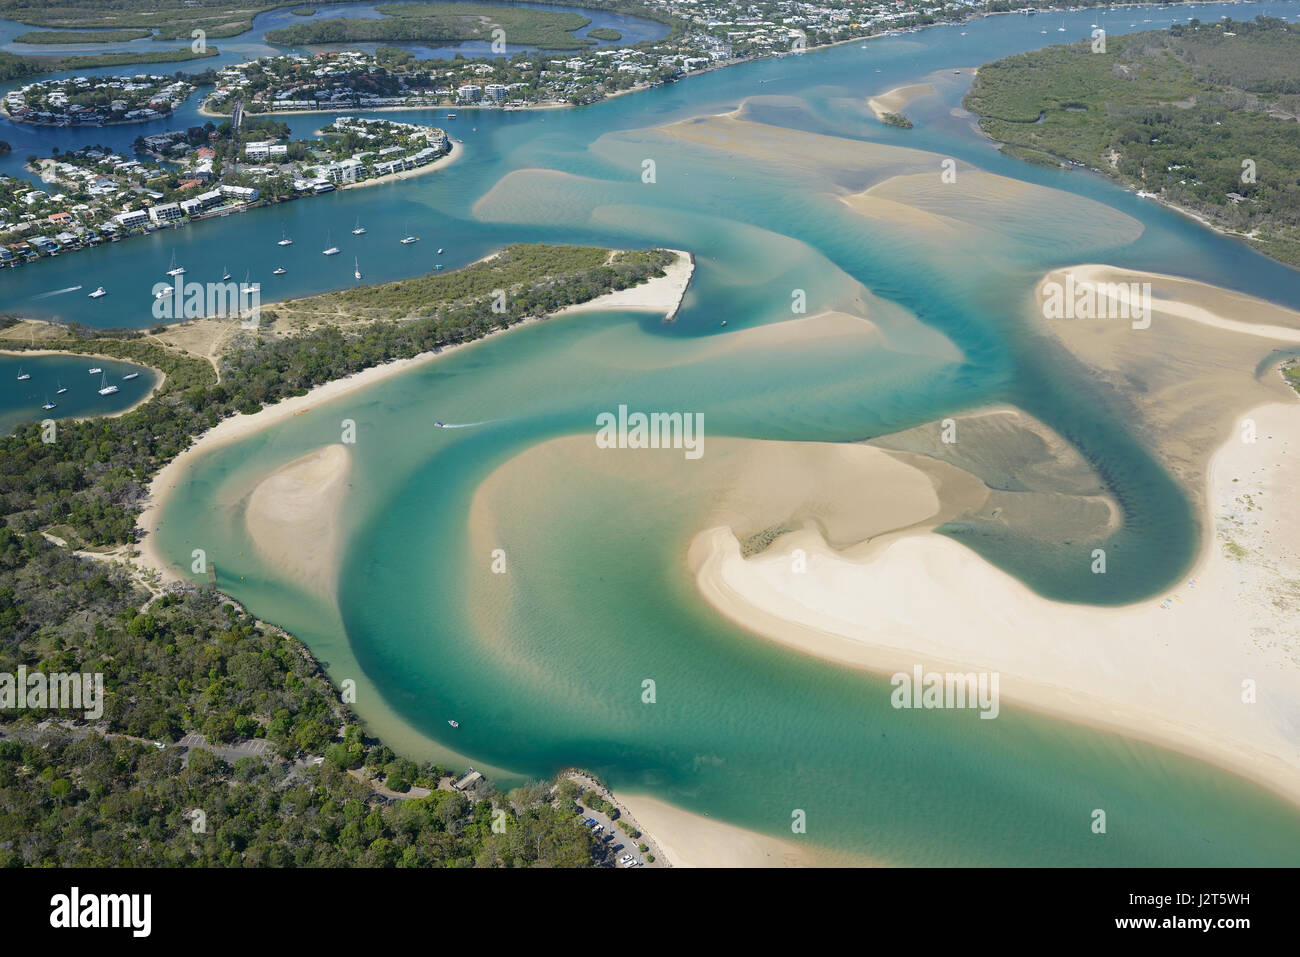 SEASIDE RESORT NEAR A COLORFUL ESTUARY (aerial view). Noosa Heads, Sunshine Coast, Queensland, Australia. - Stock Image